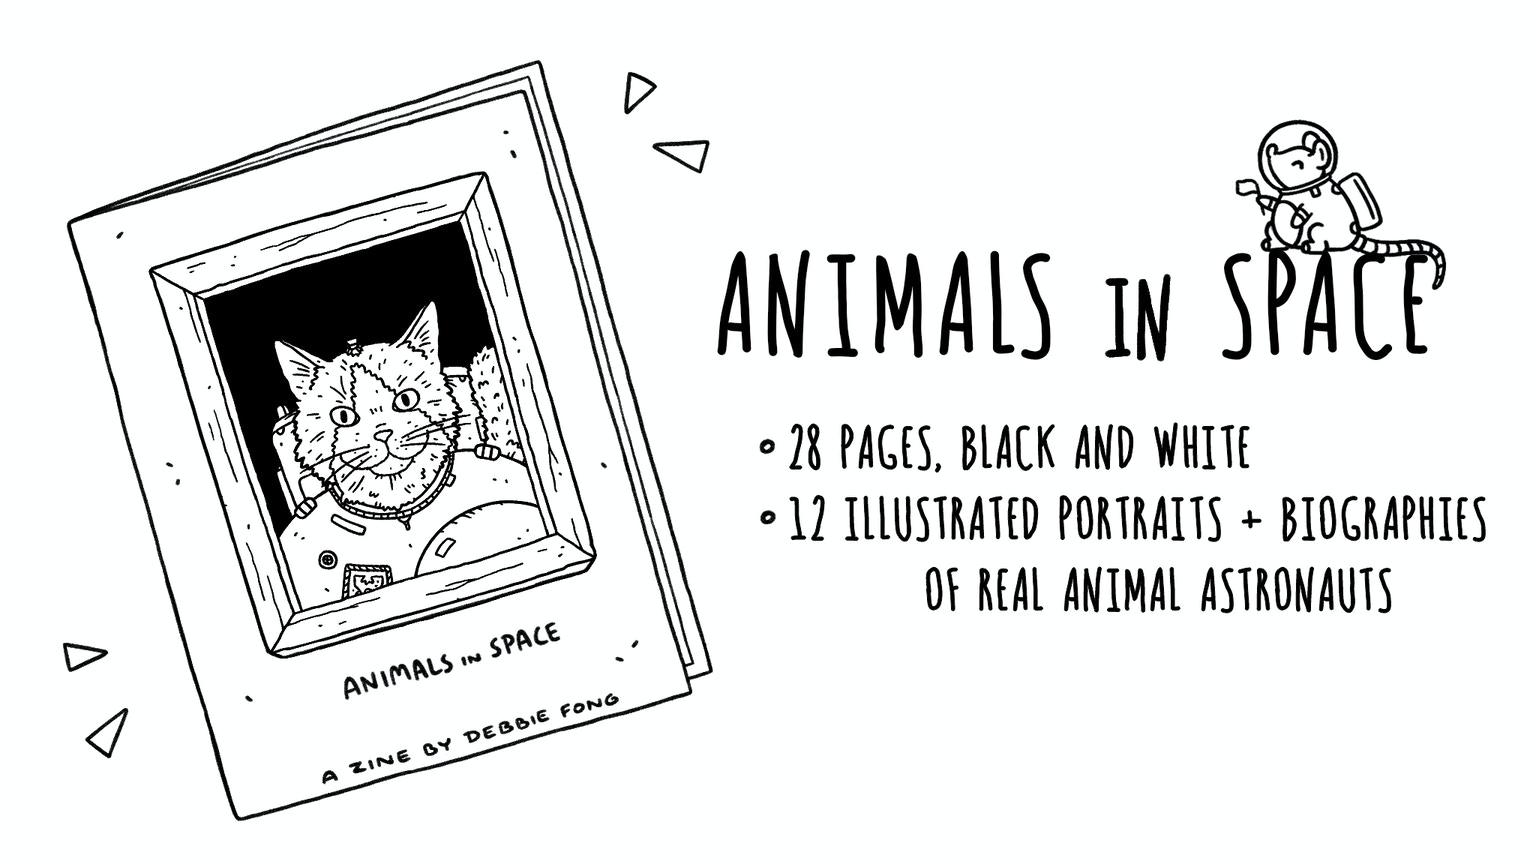 Animals in Space: An Illustrated Zine by Debbie Fong